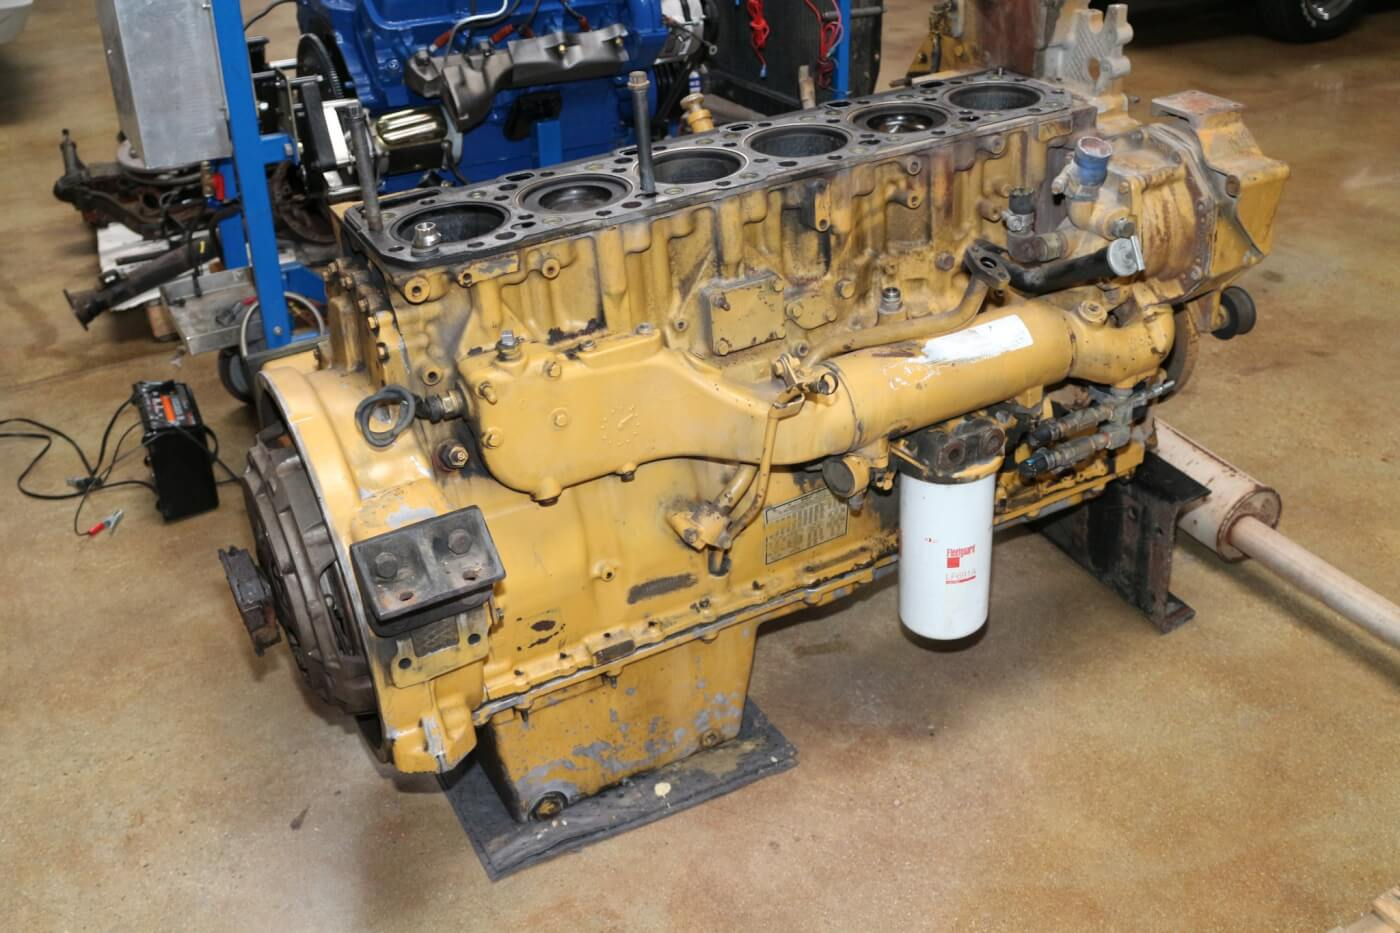 ARP is constantly developing new products. We found this Cat 16 engine in their R&D shop being used to engineer another line of diesel engine upgrade assembly hardware.